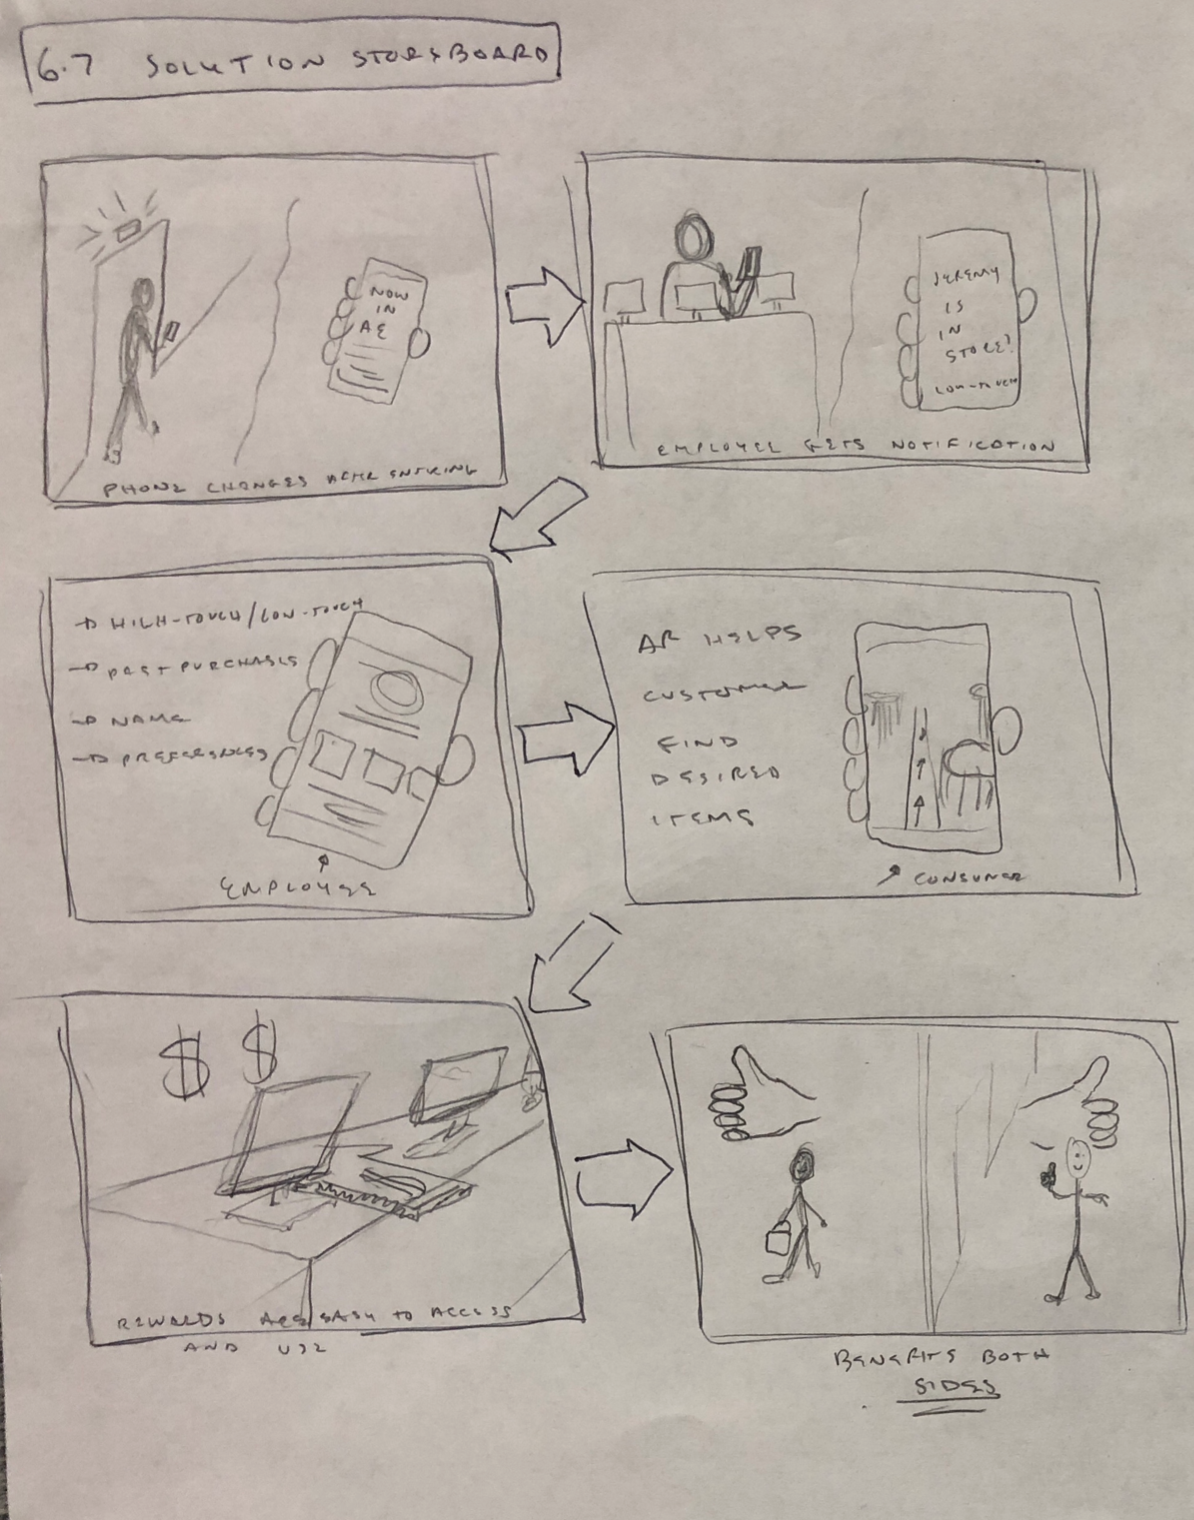 Solution Storyboard.png